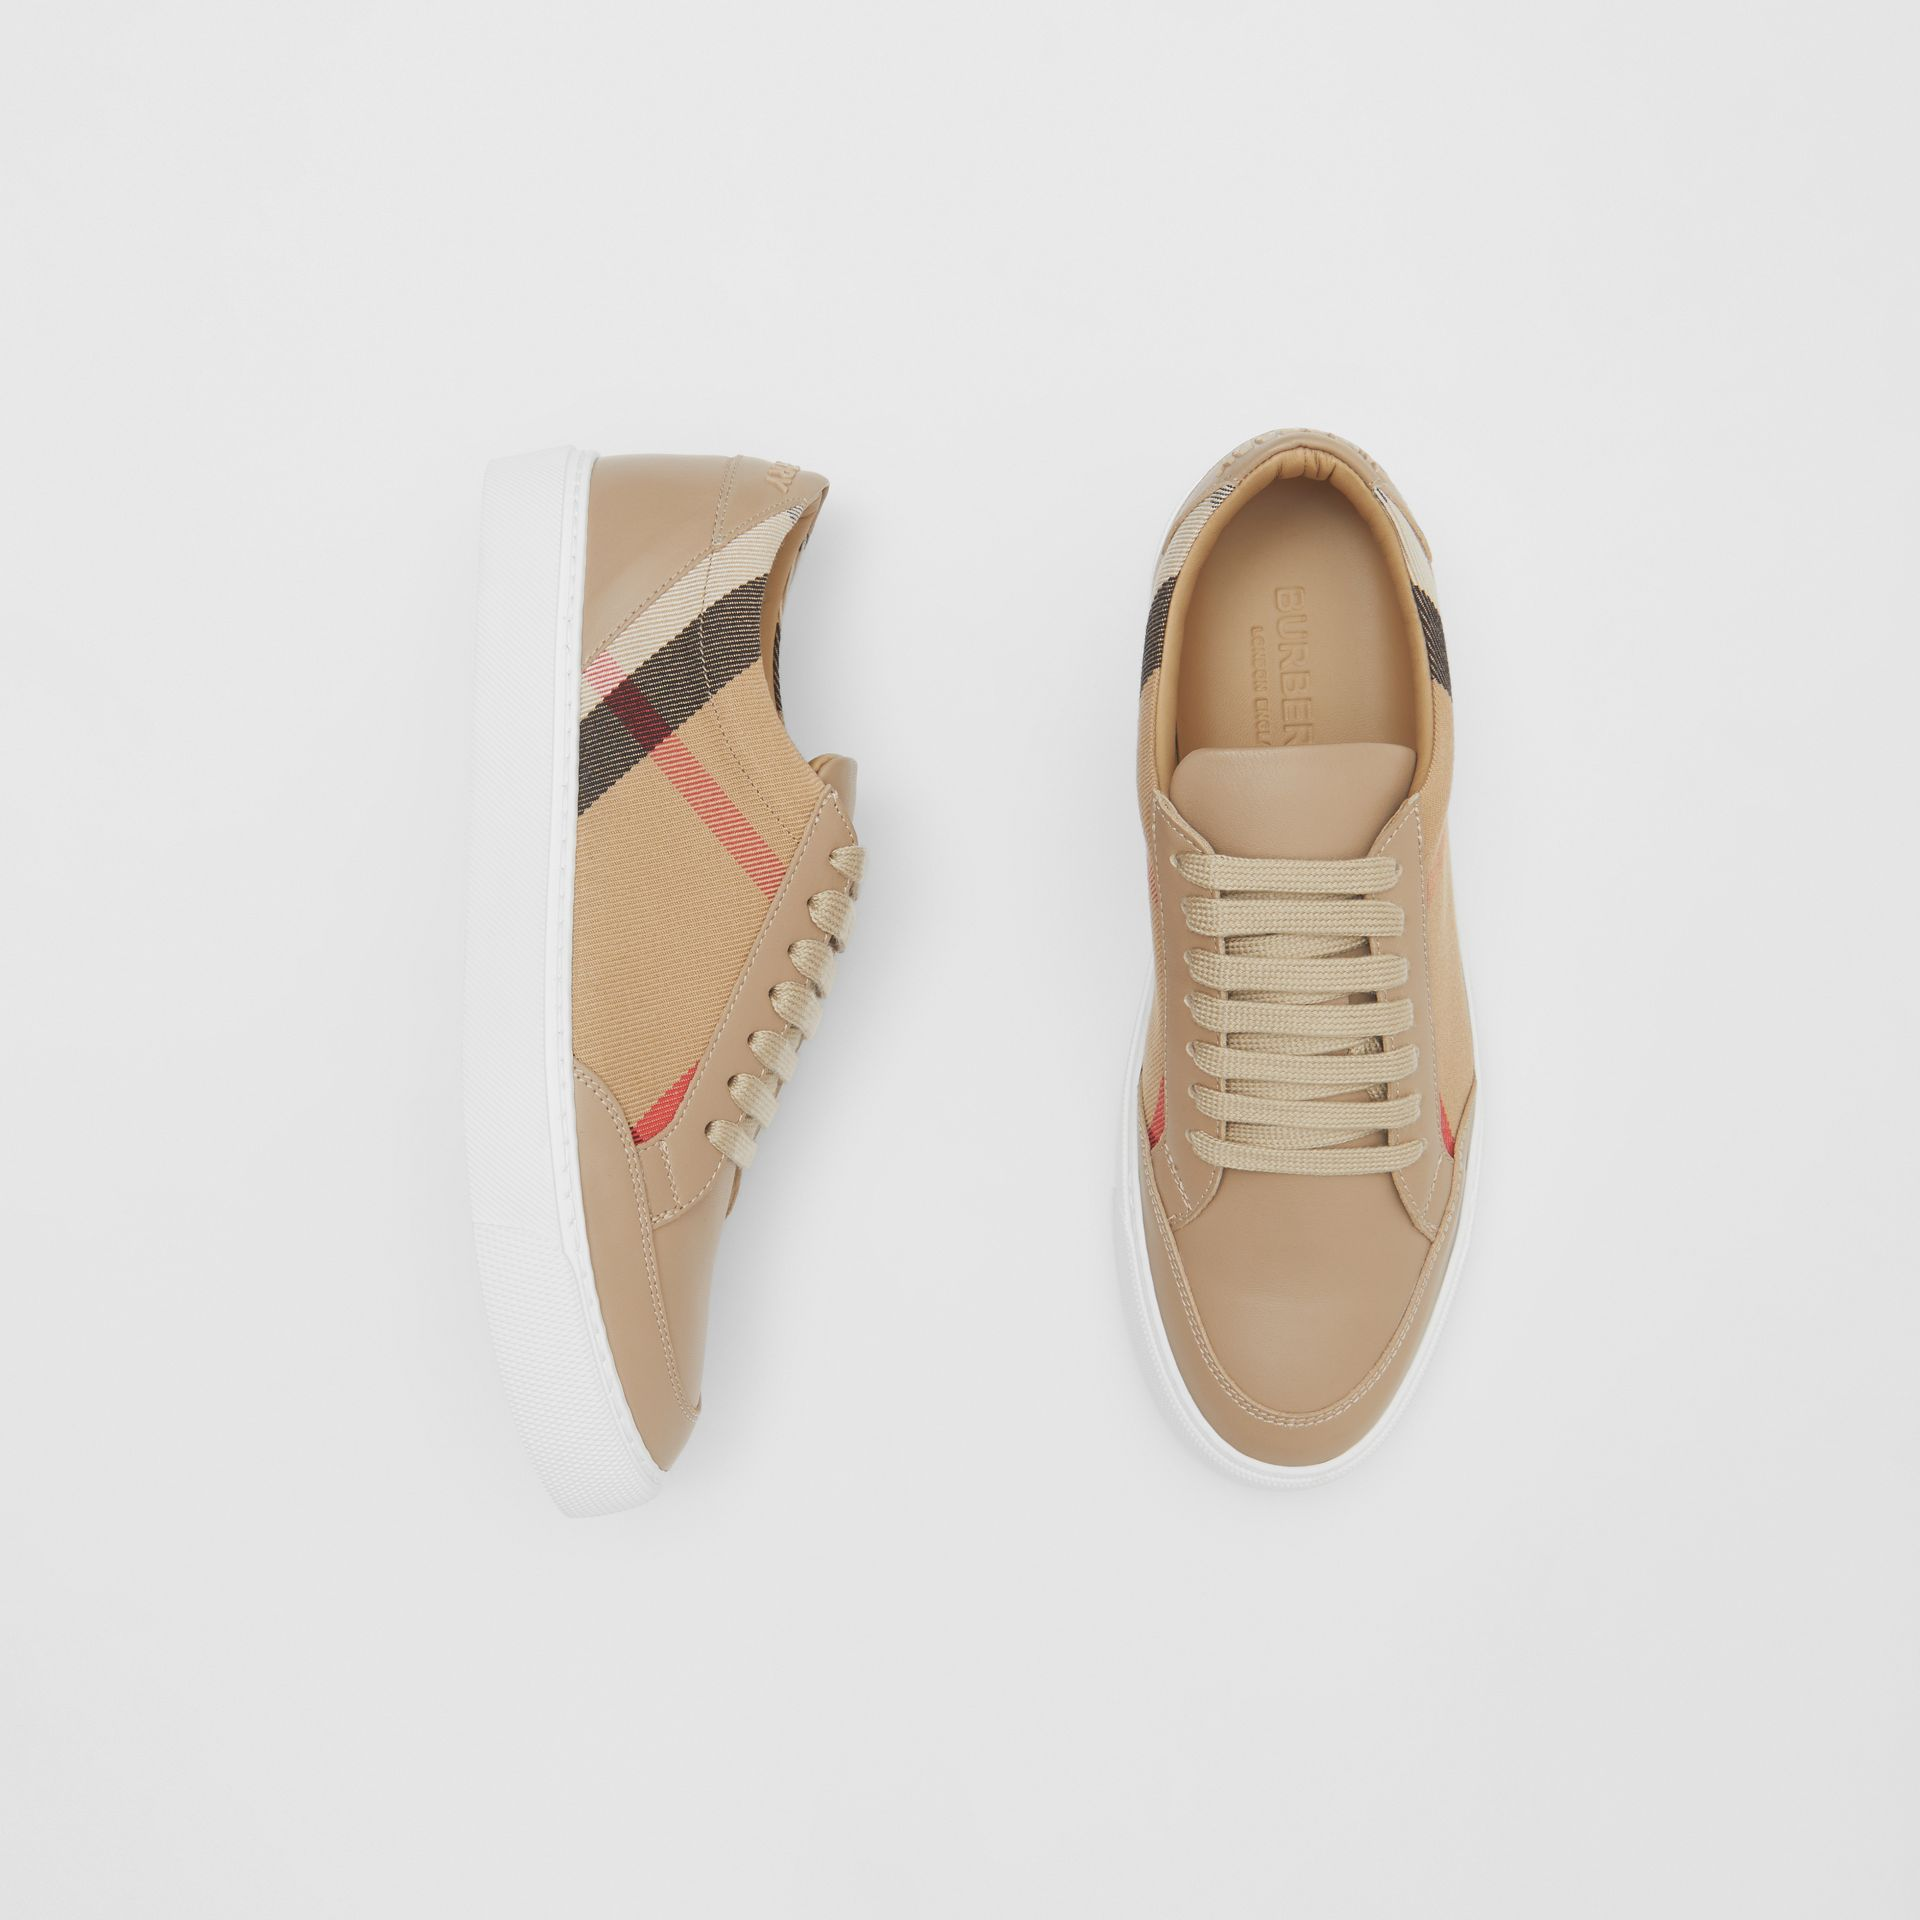 House Check and Leather Sneakers in Tan - Women | Burberry - gallery image 0